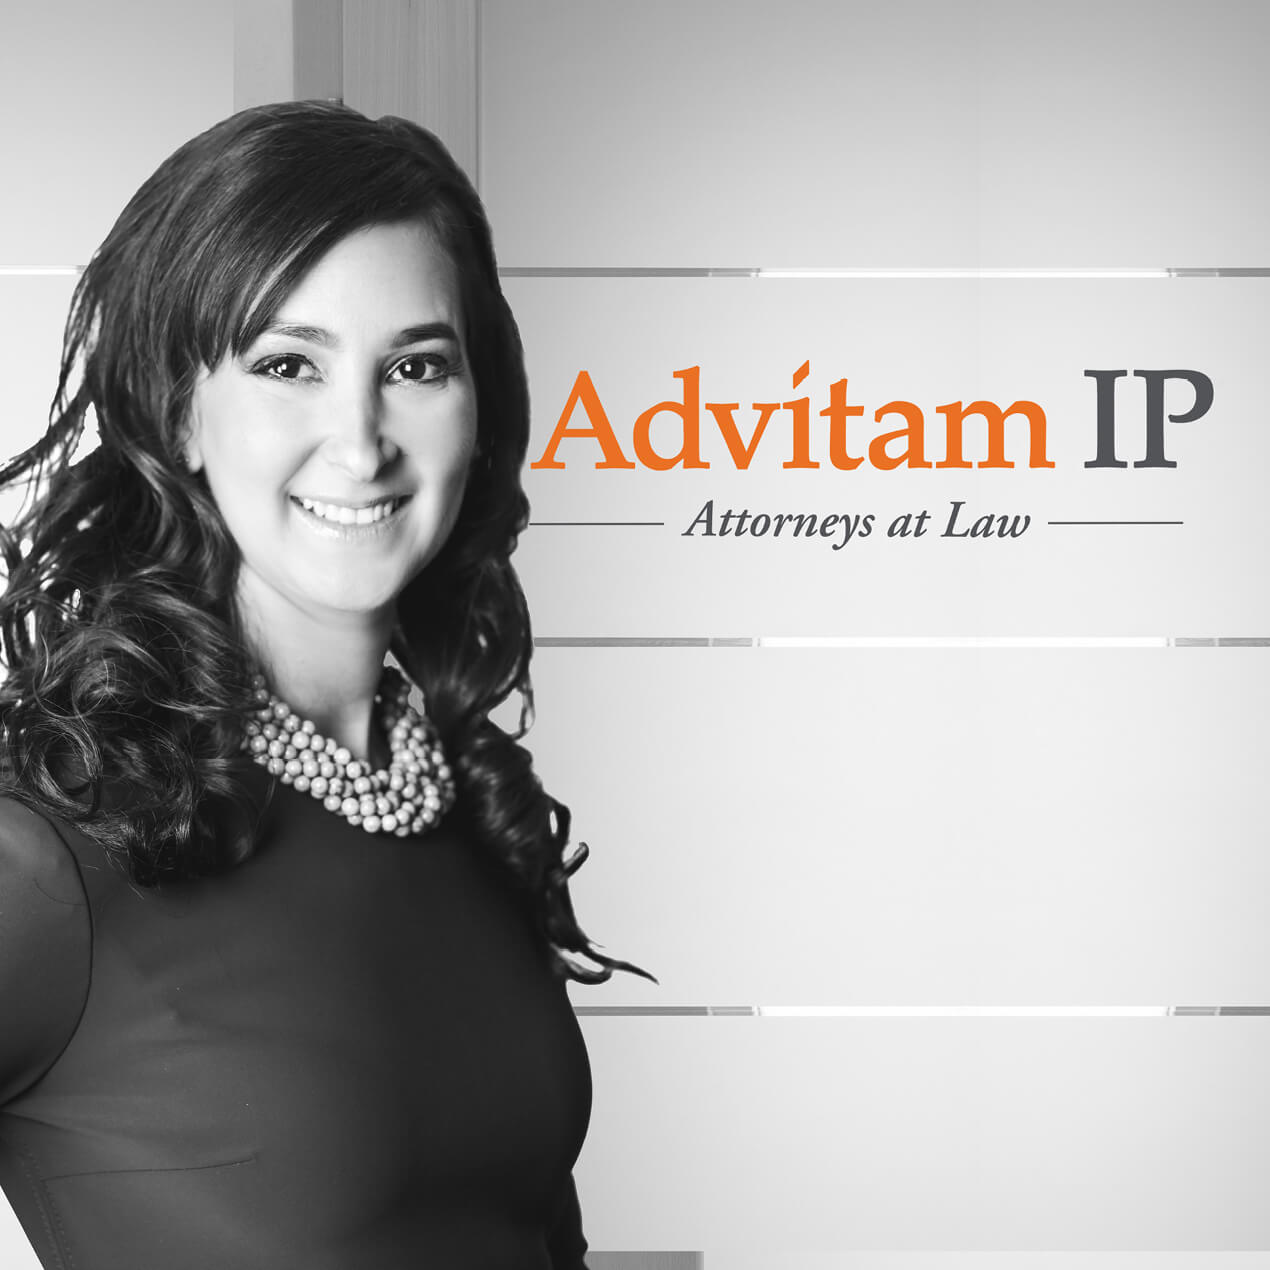 Michele Katz, Advitam IP